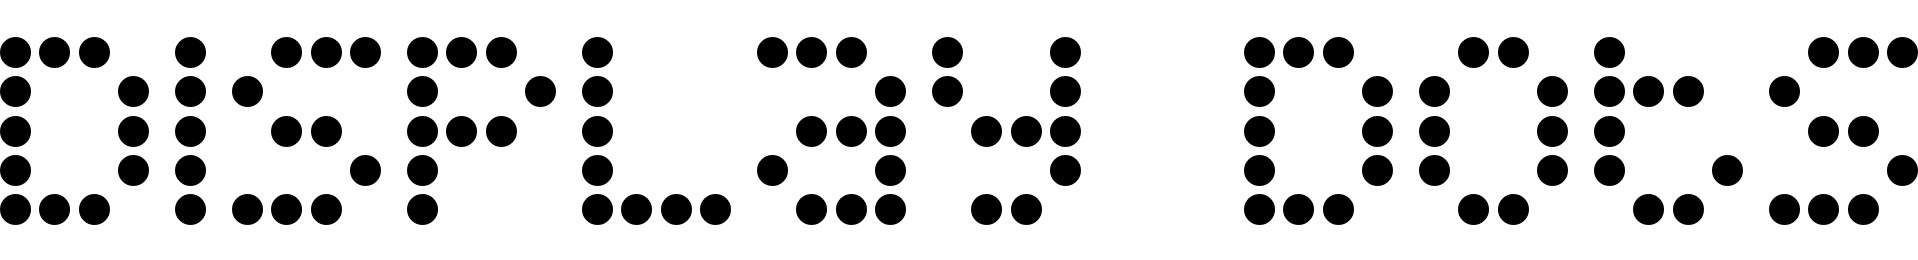 Display Dots